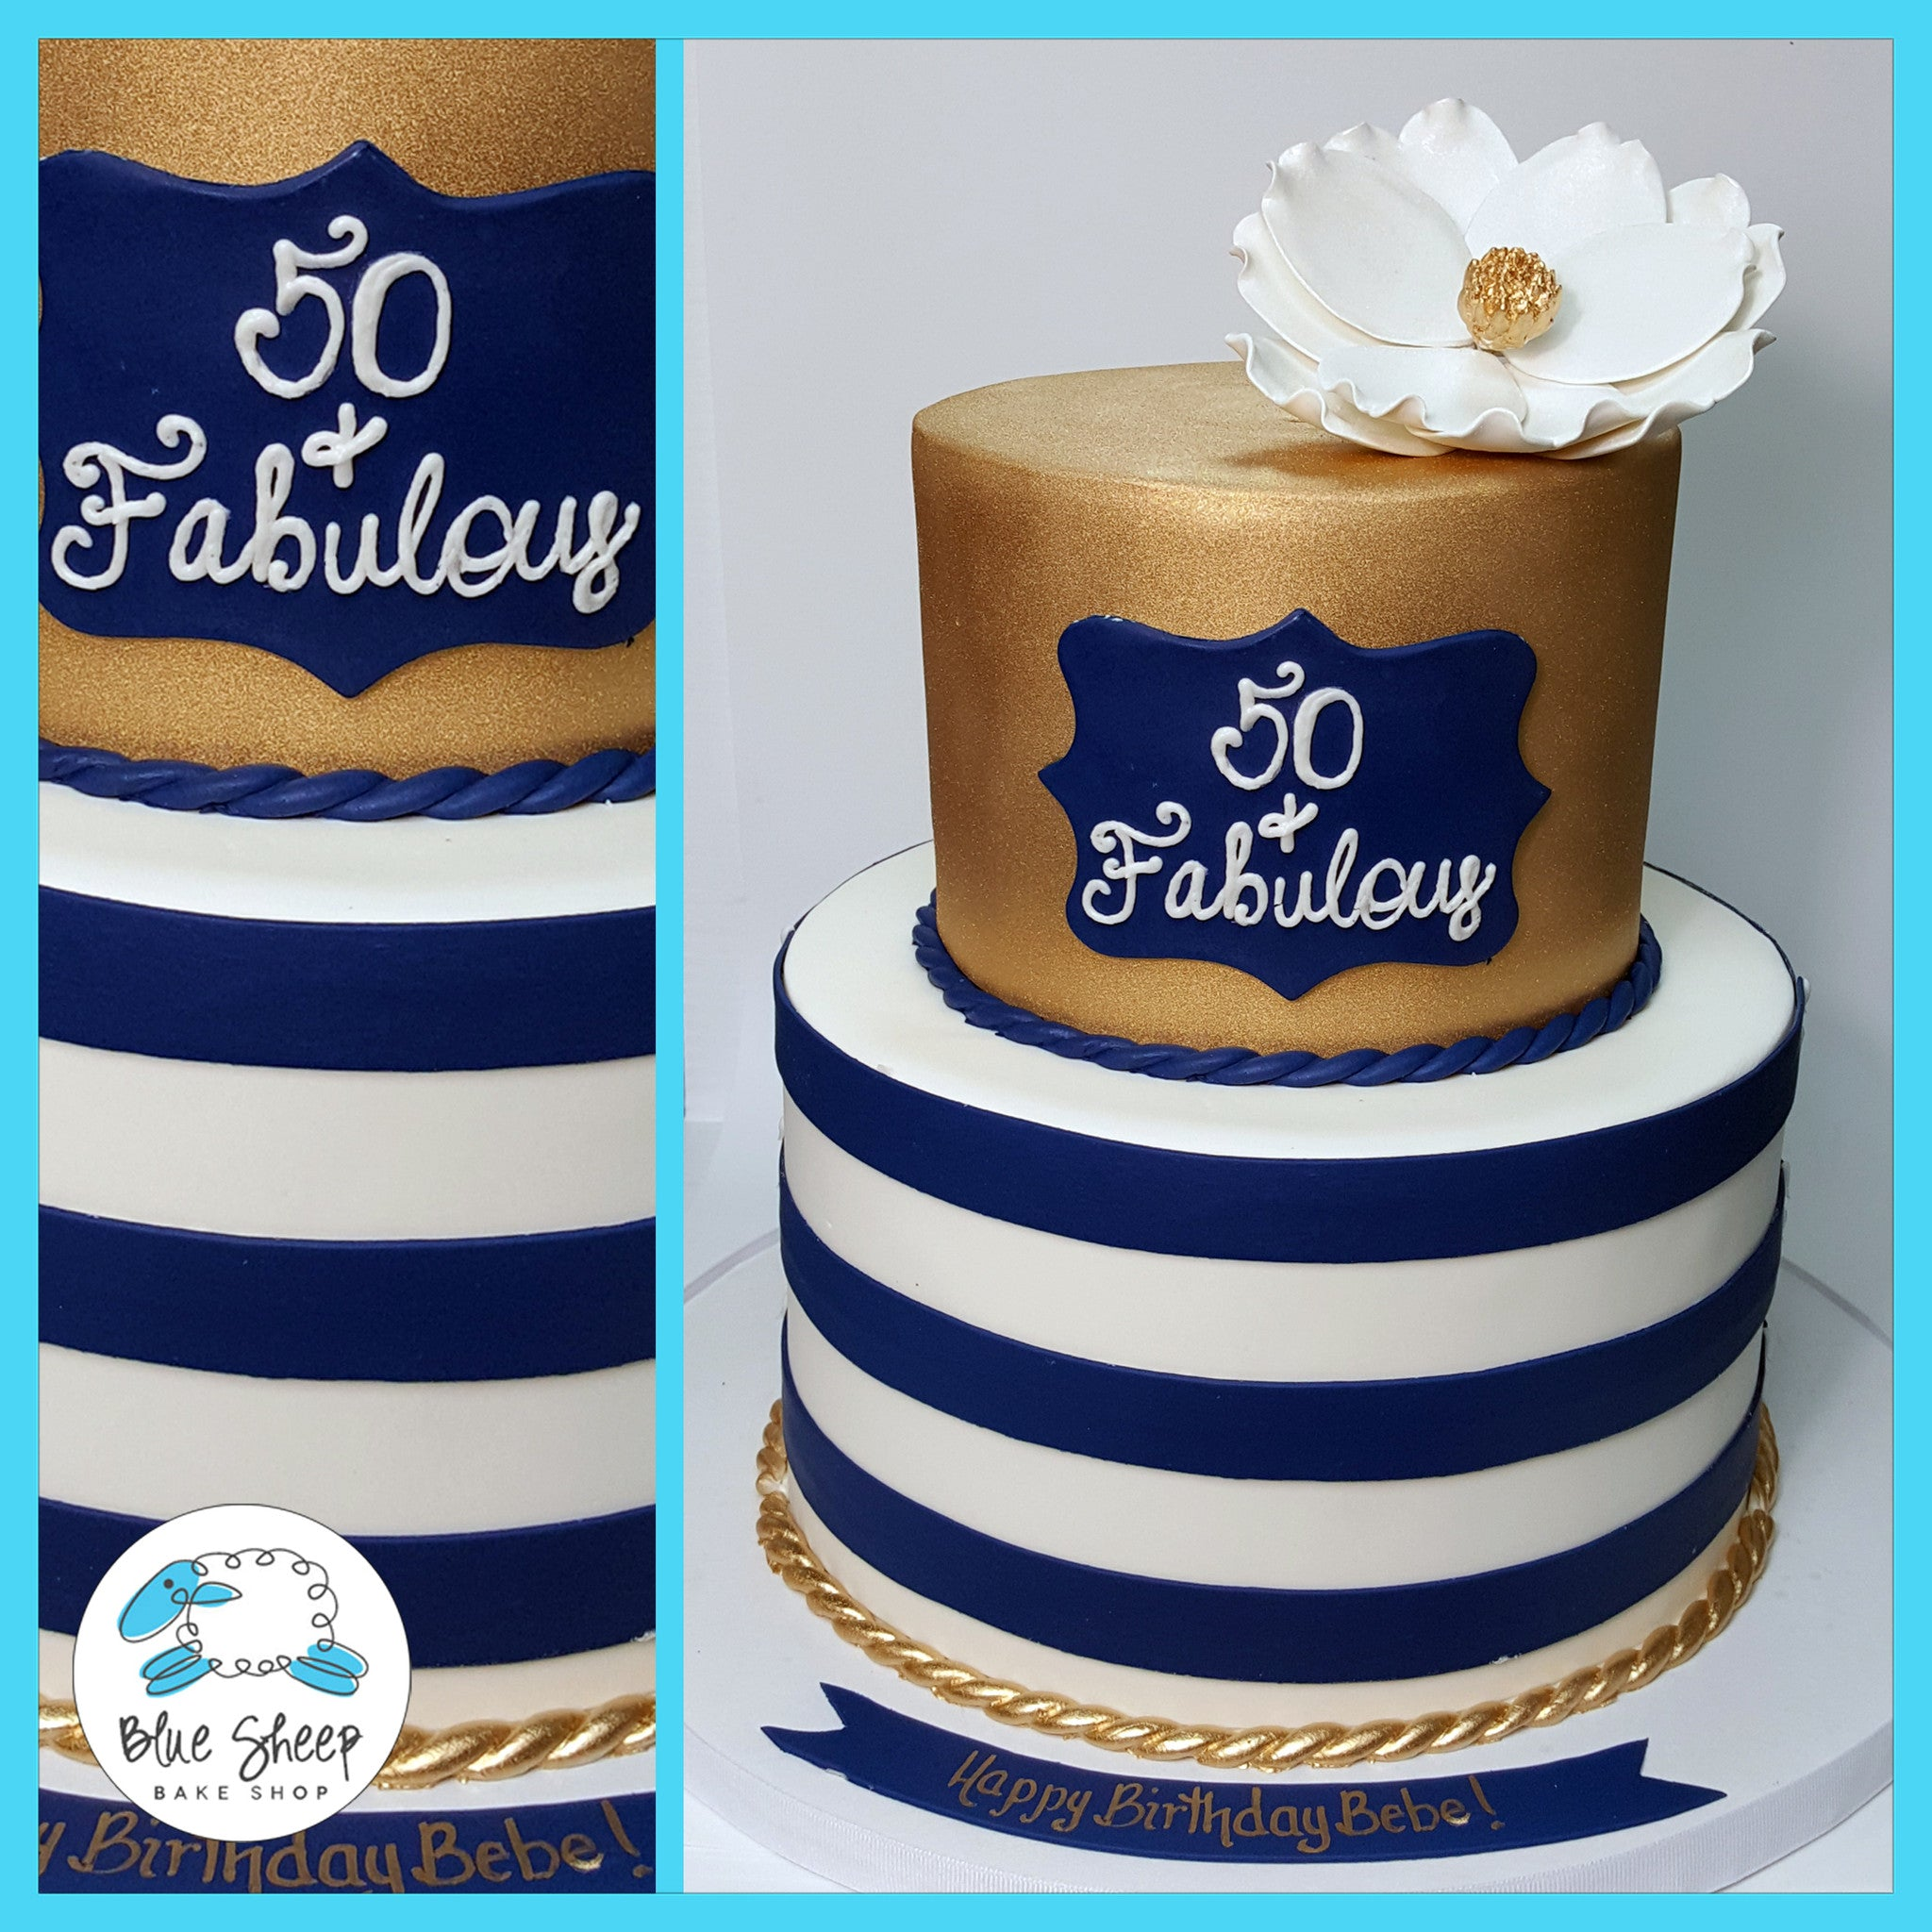 Stupendous Navy And Gold 50 And Fabulous Birthday Cake Blue Sheep Bake Shop Funny Birthday Cards Online Alyptdamsfinfo